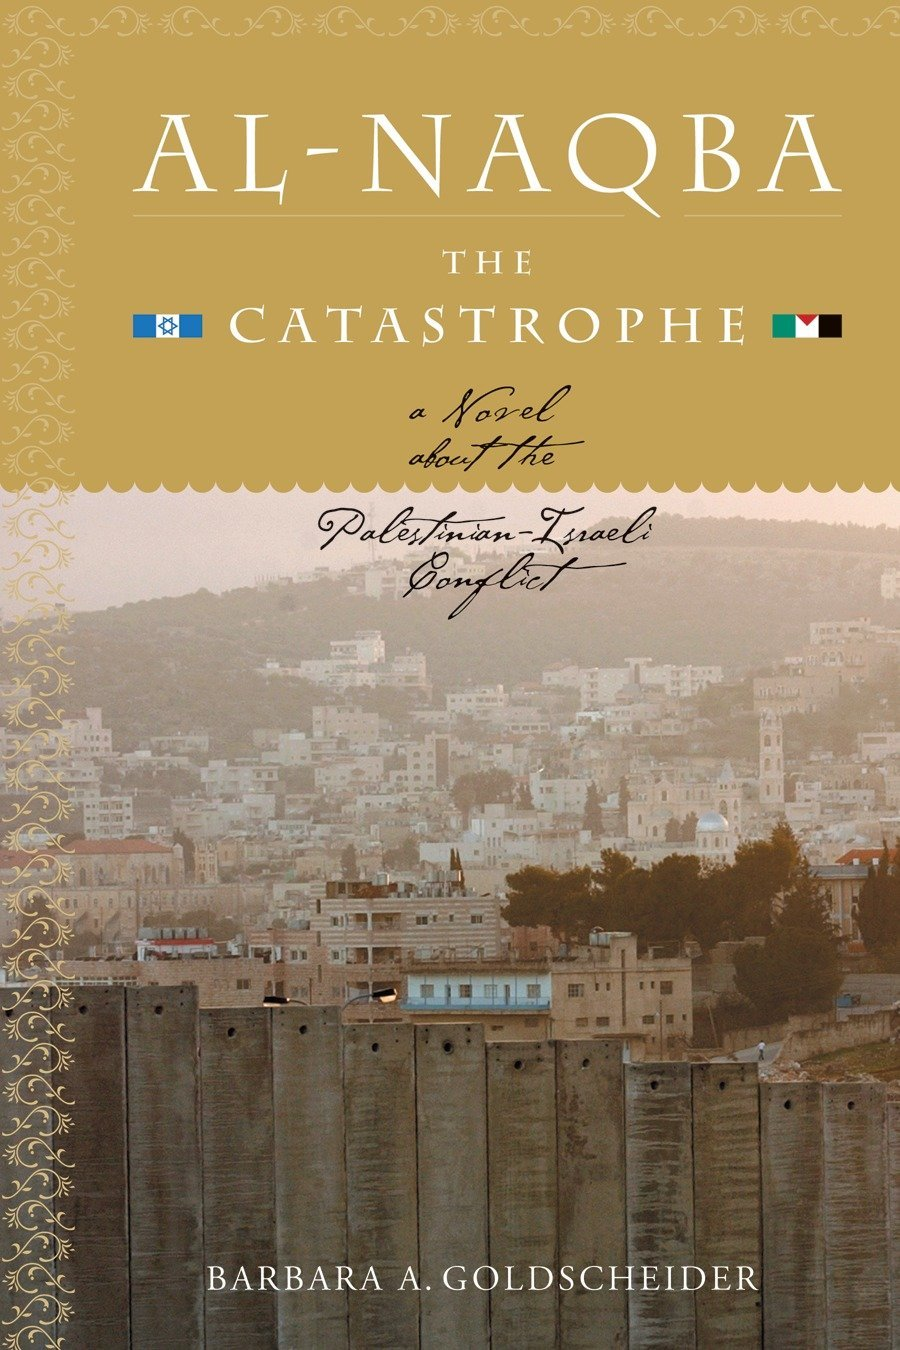 Download Al-Naqba (The Catastrophe): A Novel About the Palestinian-Israeli Conflict ebook